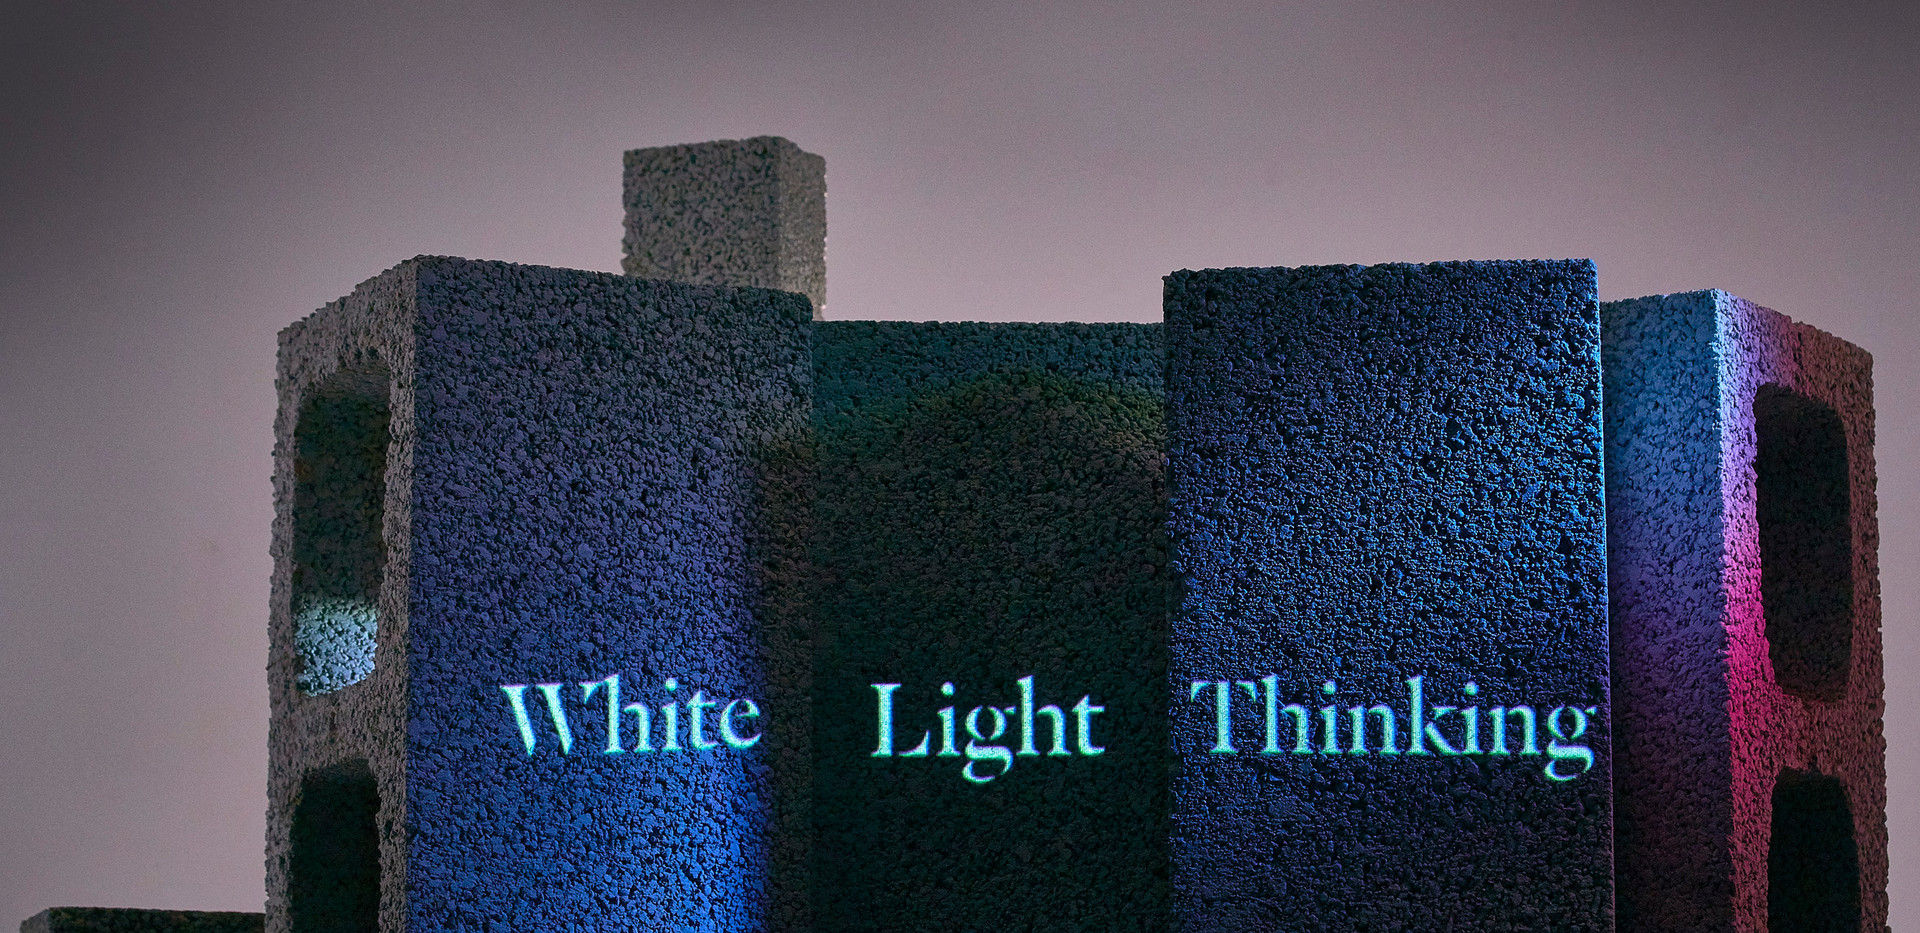 White light thinking